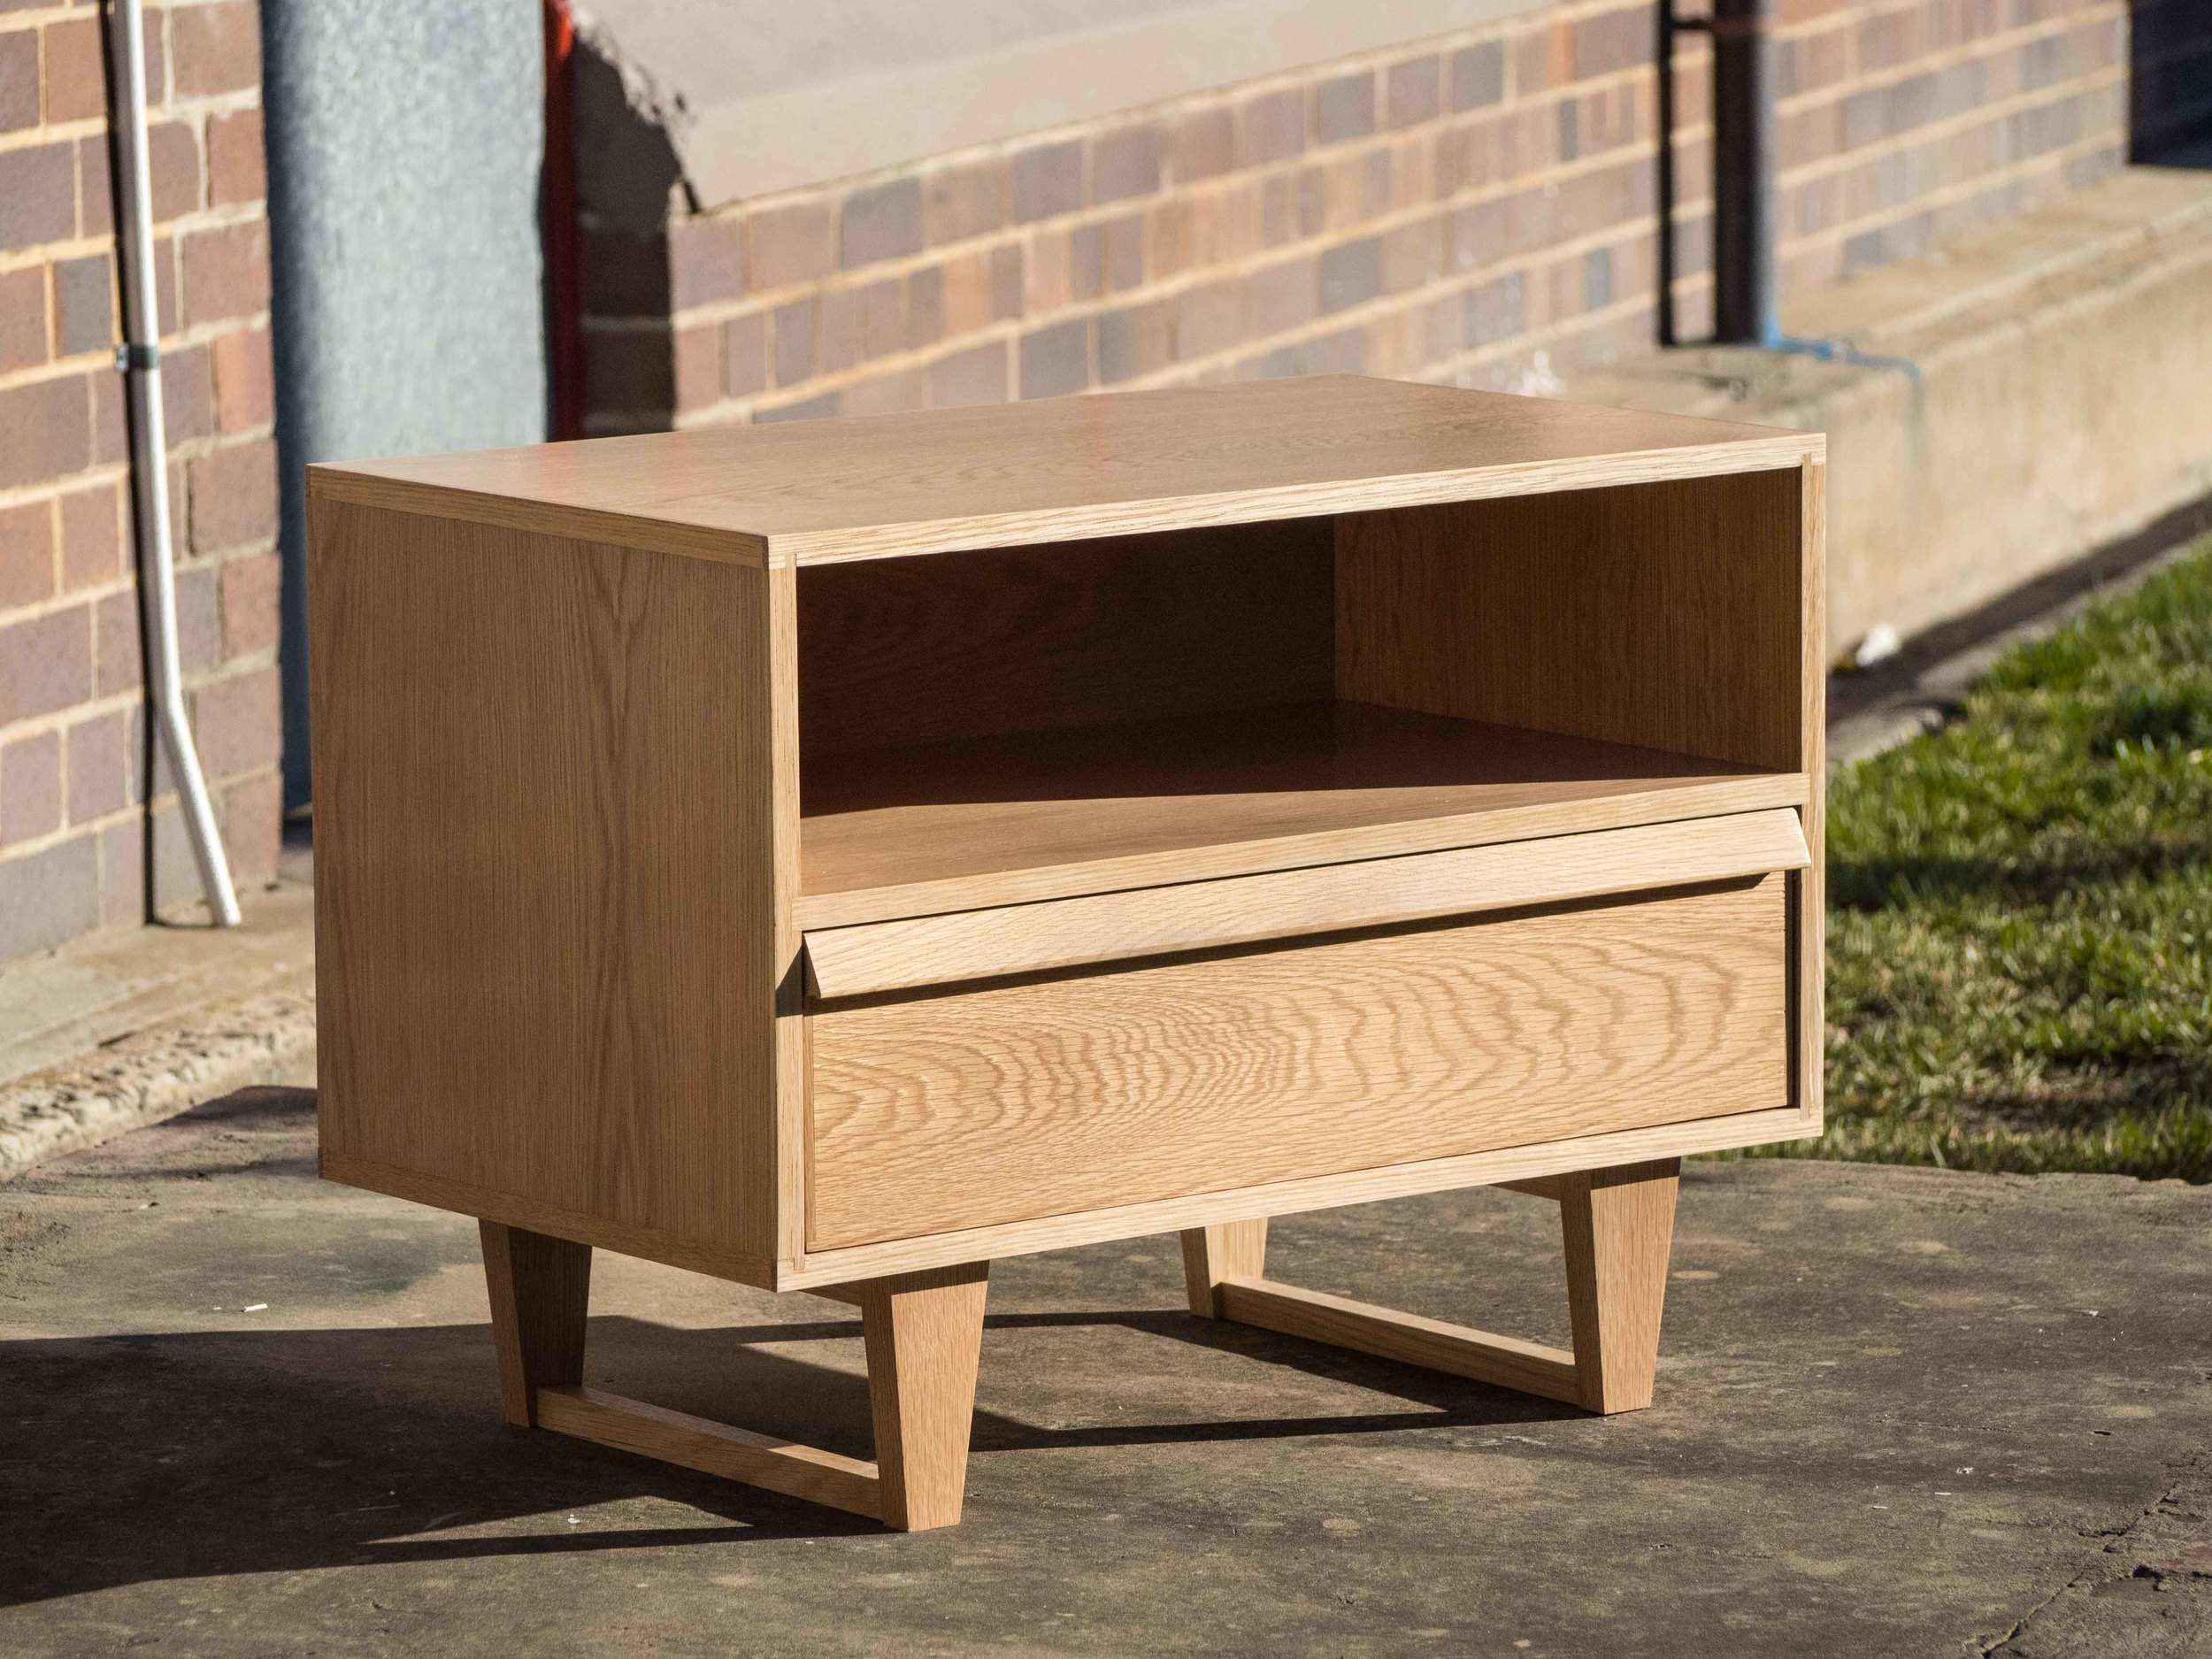 One of two fifties inspired bedside cabinets by Andy.